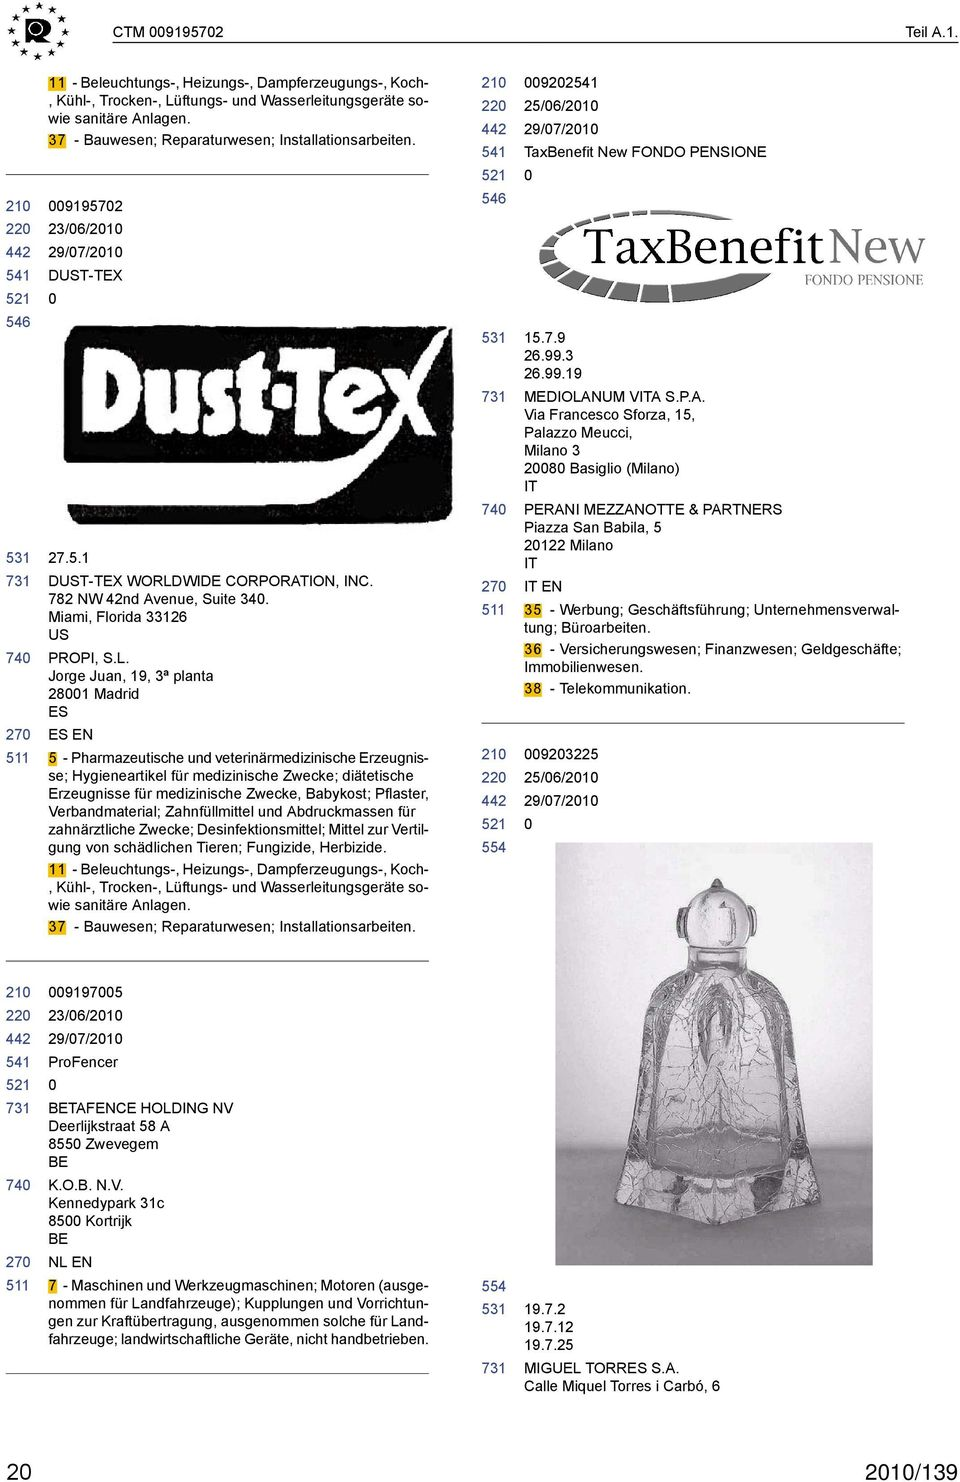 WIDE CORPORATION, INC. 782 NW 42nd Avenue, Suite 34. Miami, Florida 33126 US PROPI, S.L.